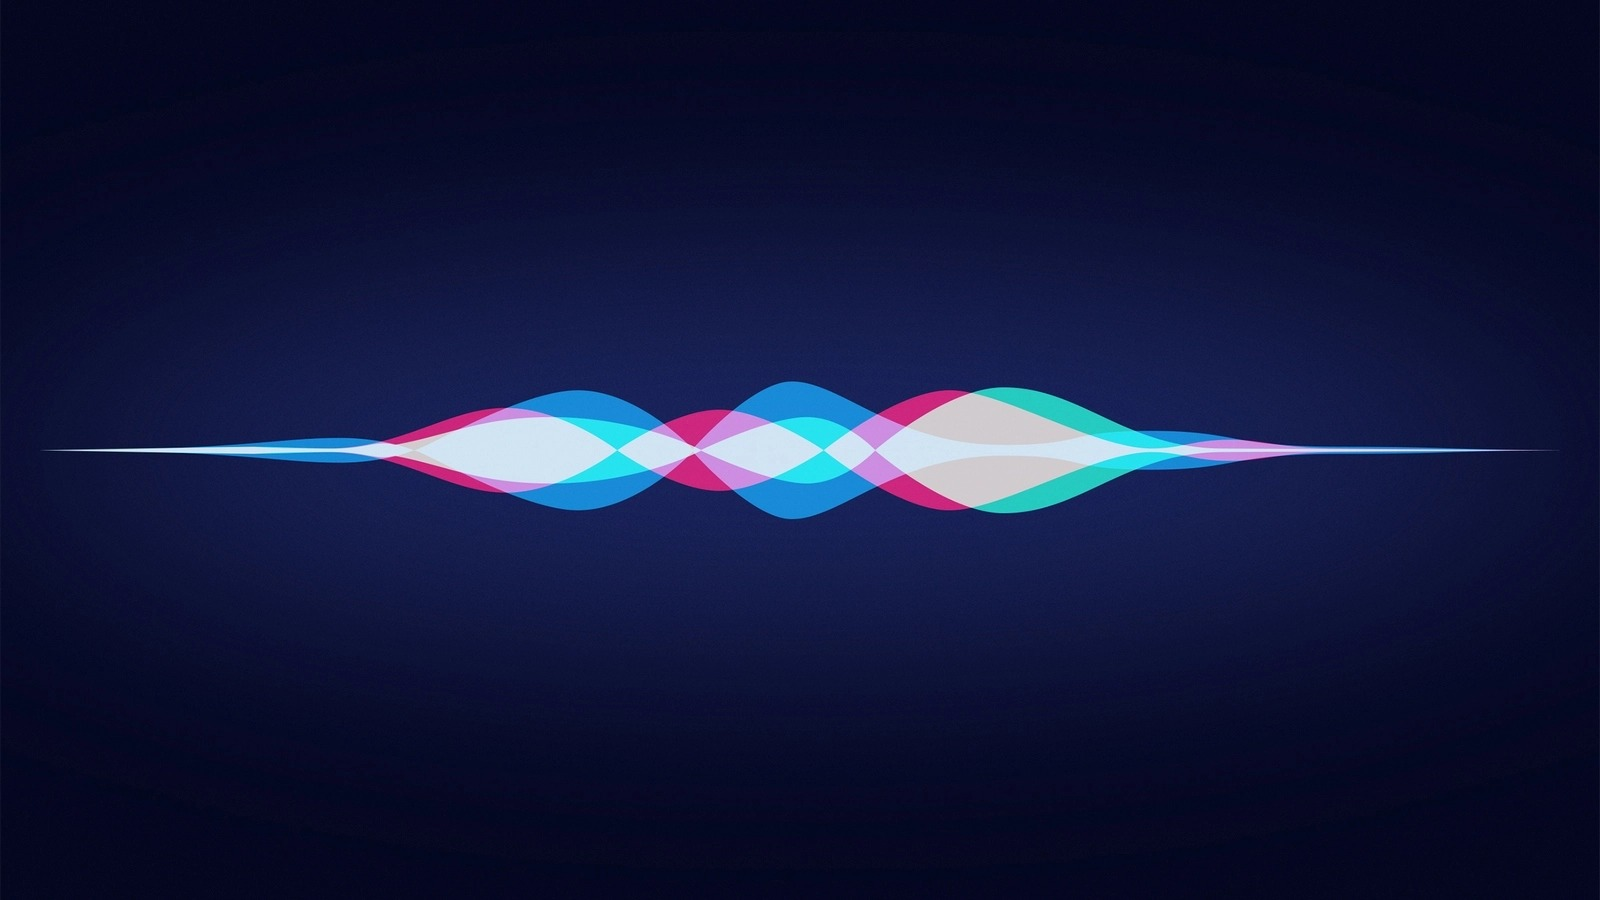 Apple spiega i segreti dietro Hey Siri in un nuovo documento